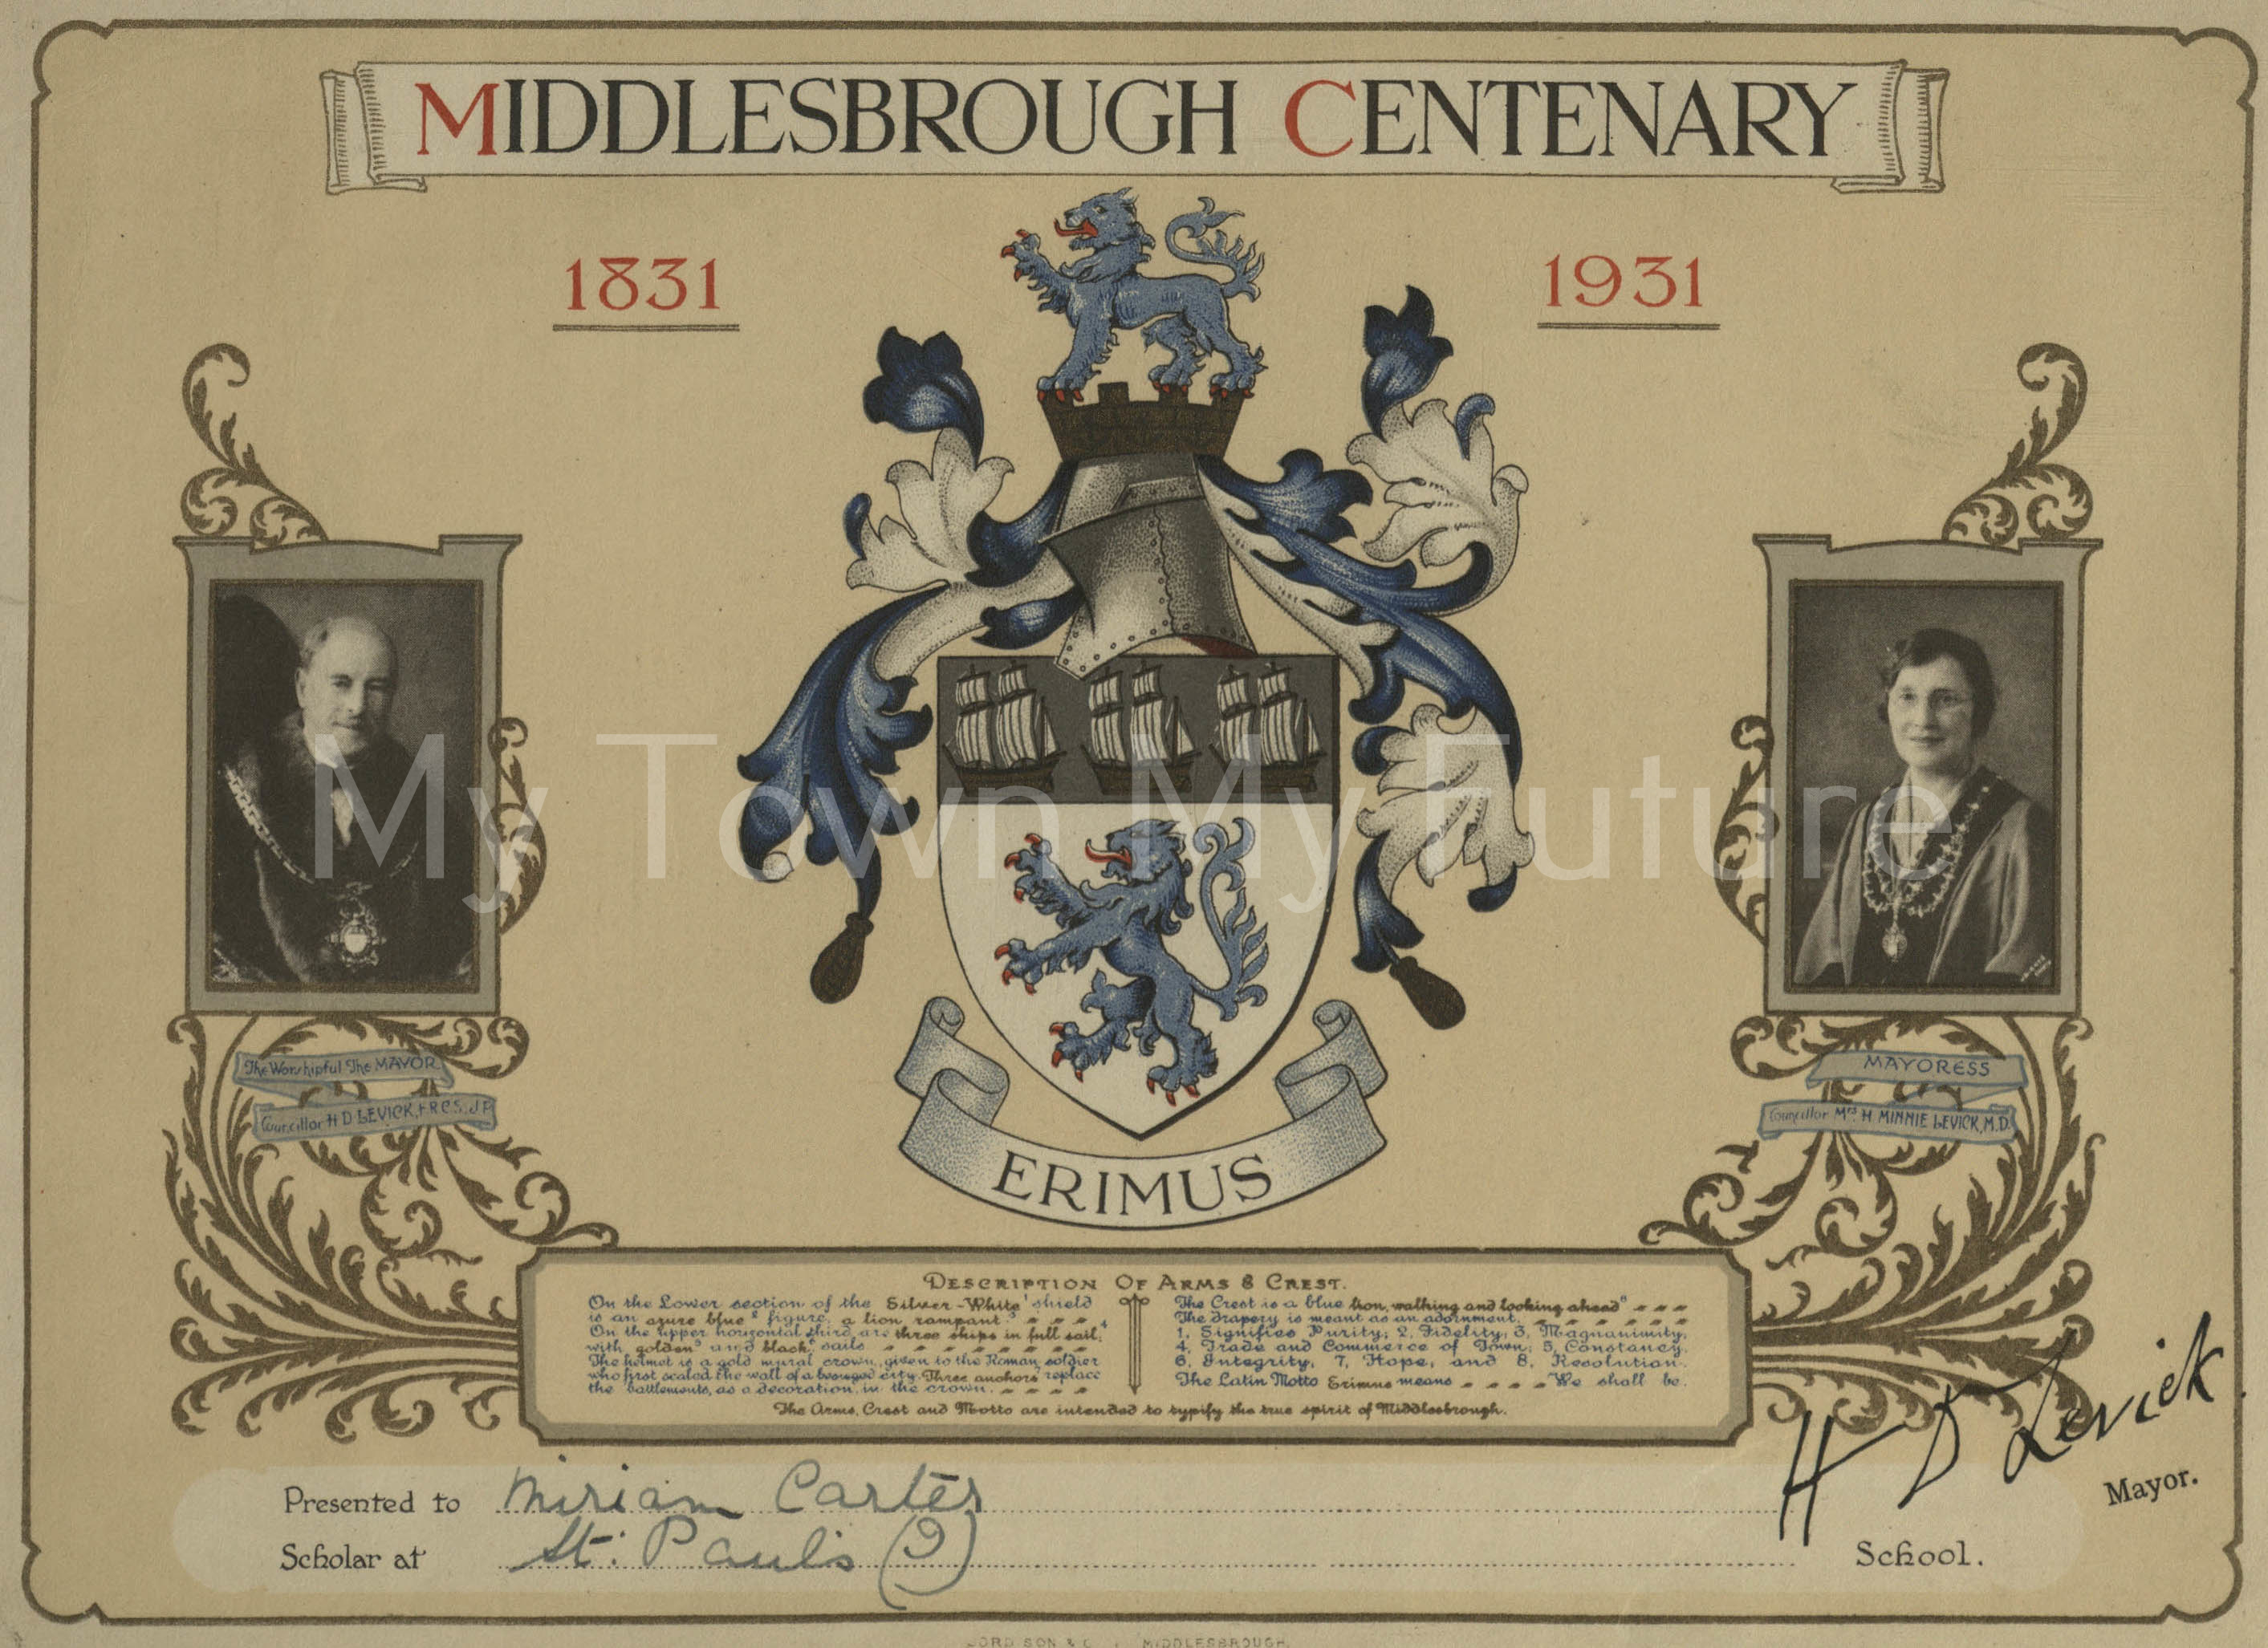 Middlesbrough Centenary, 1931, Marian Flint Collection